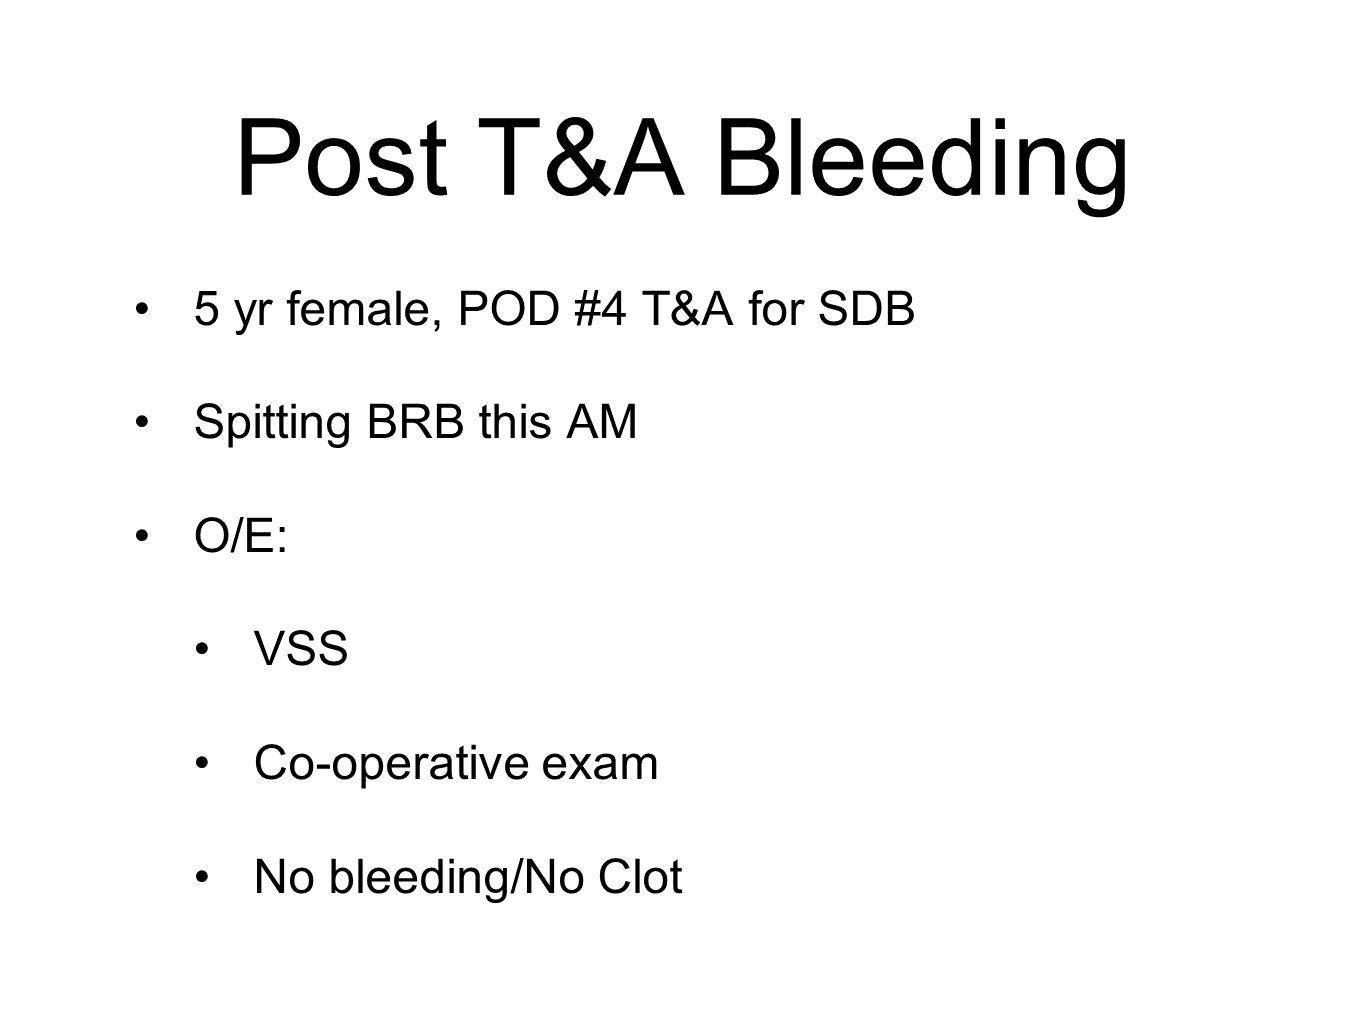 Post T&A Bleeding 5 yr female, POD #4 T&A for SDB Spitting BRB this AM